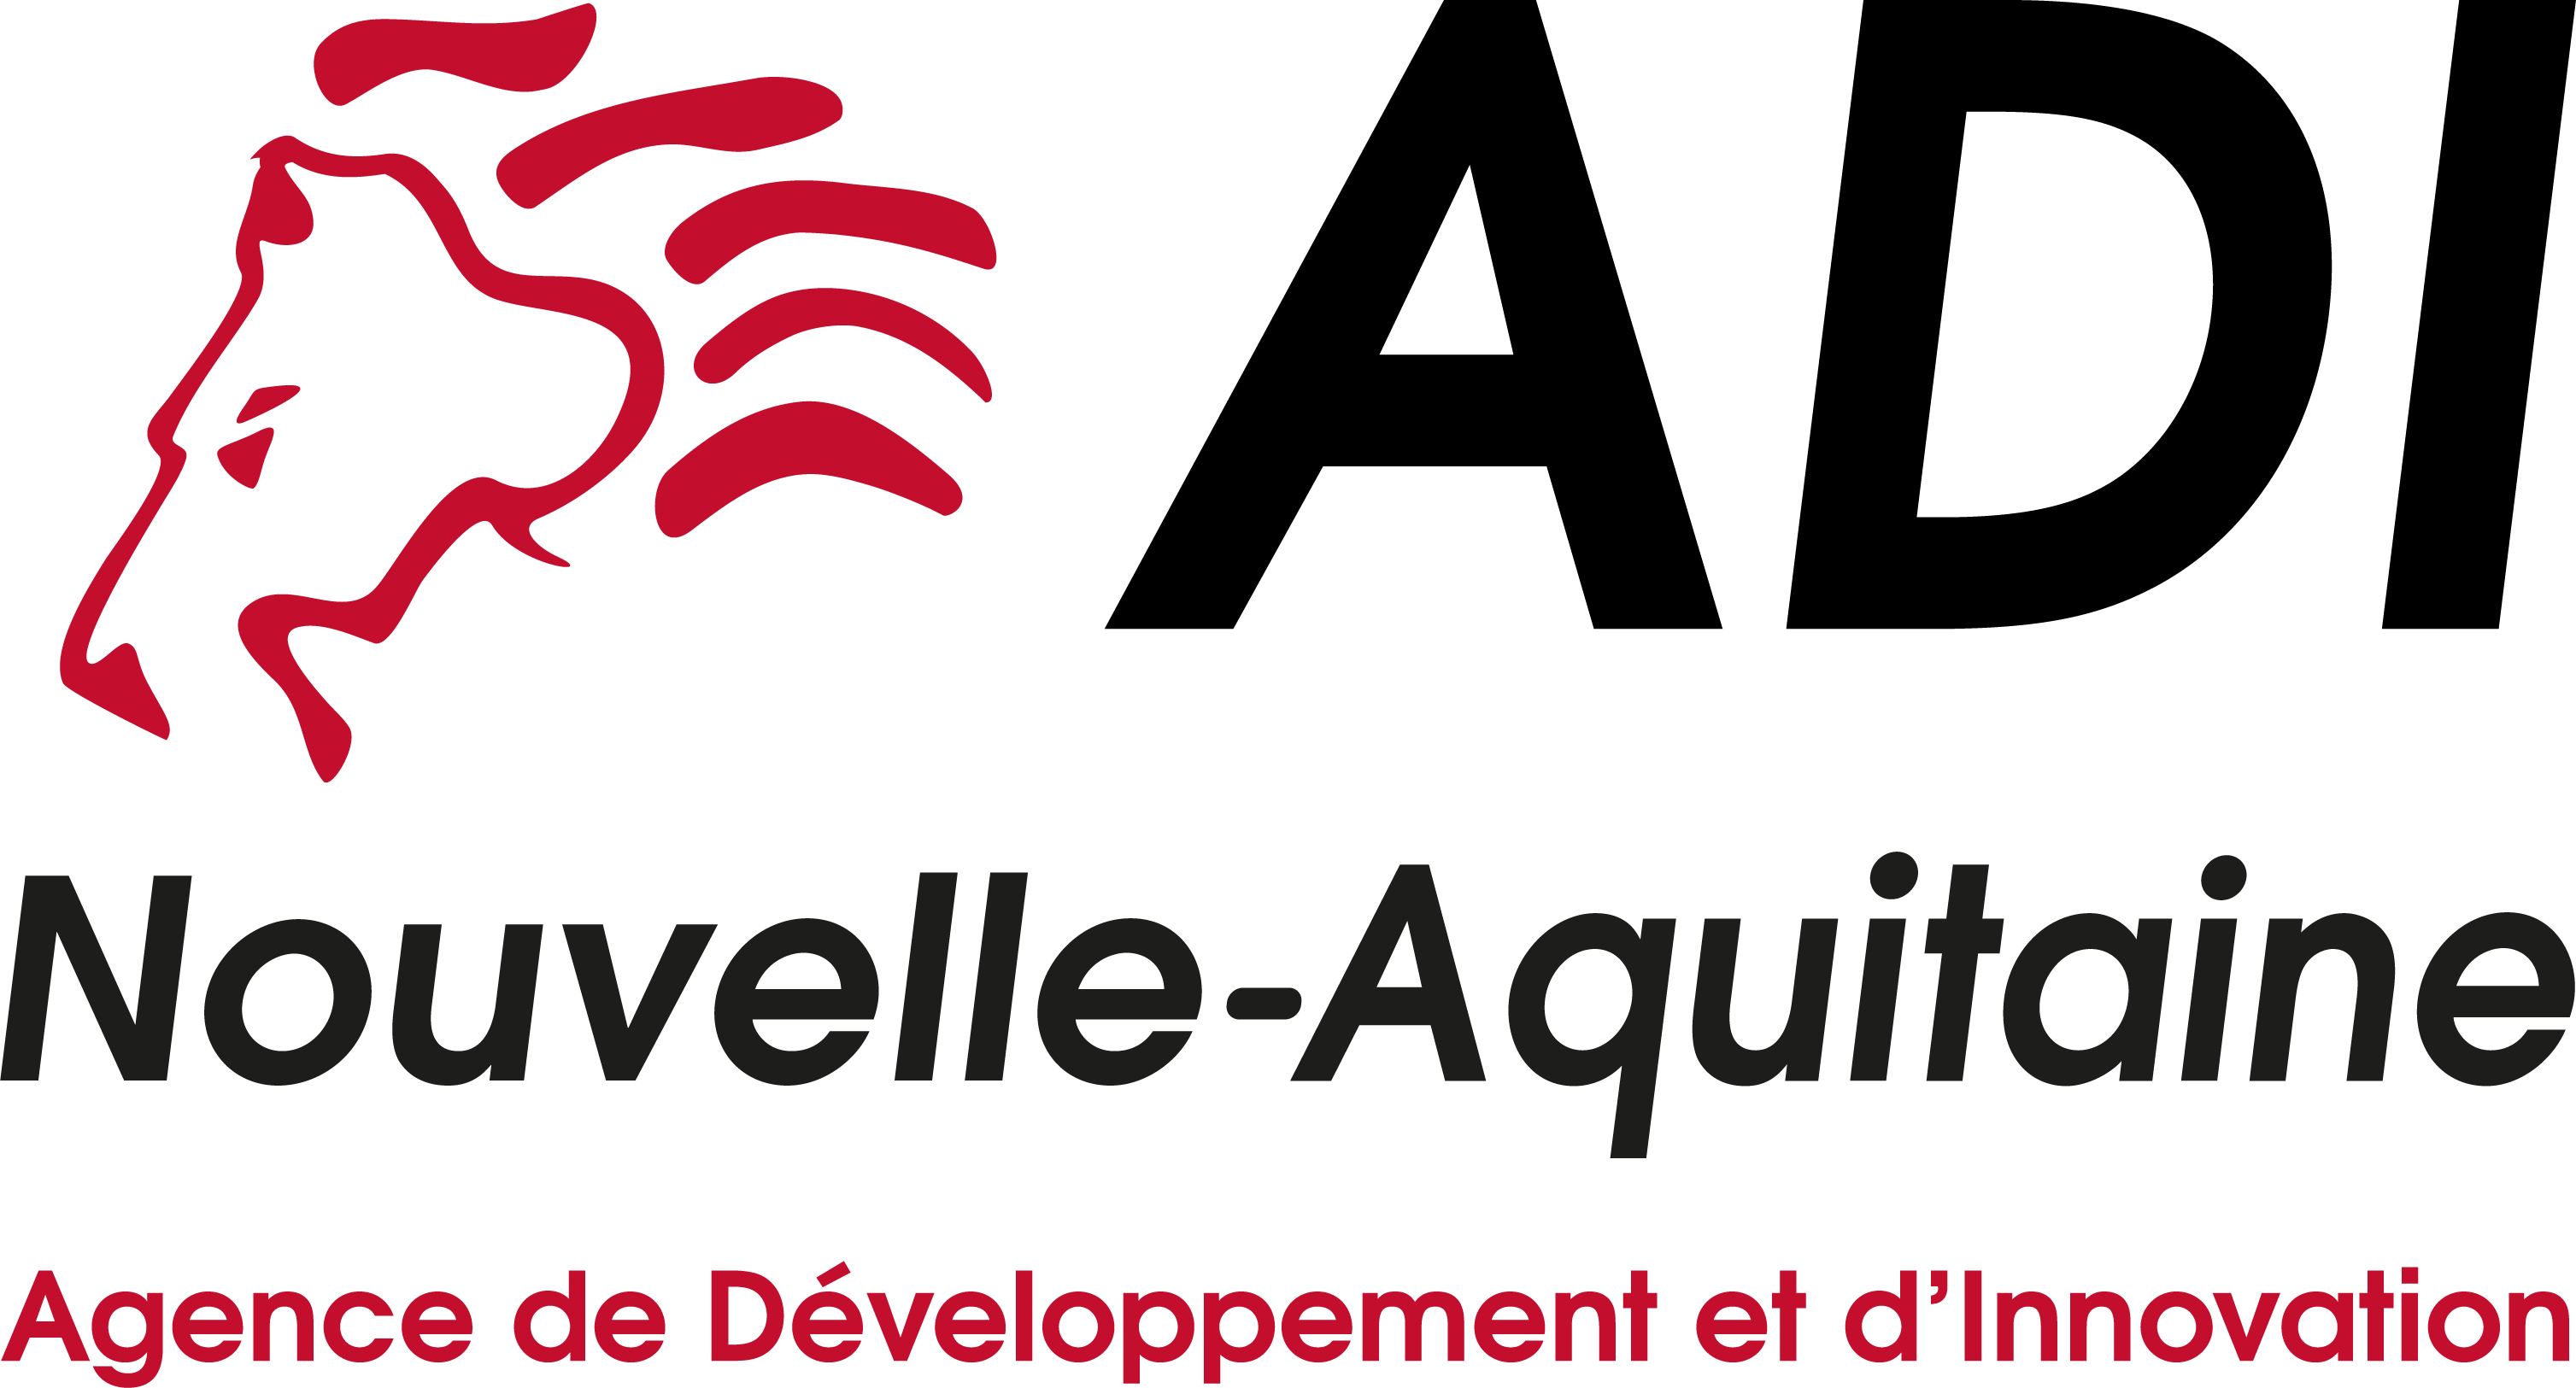 Agence de Développement et d'Innovation de la Nouvelle-Aquitaine Logo